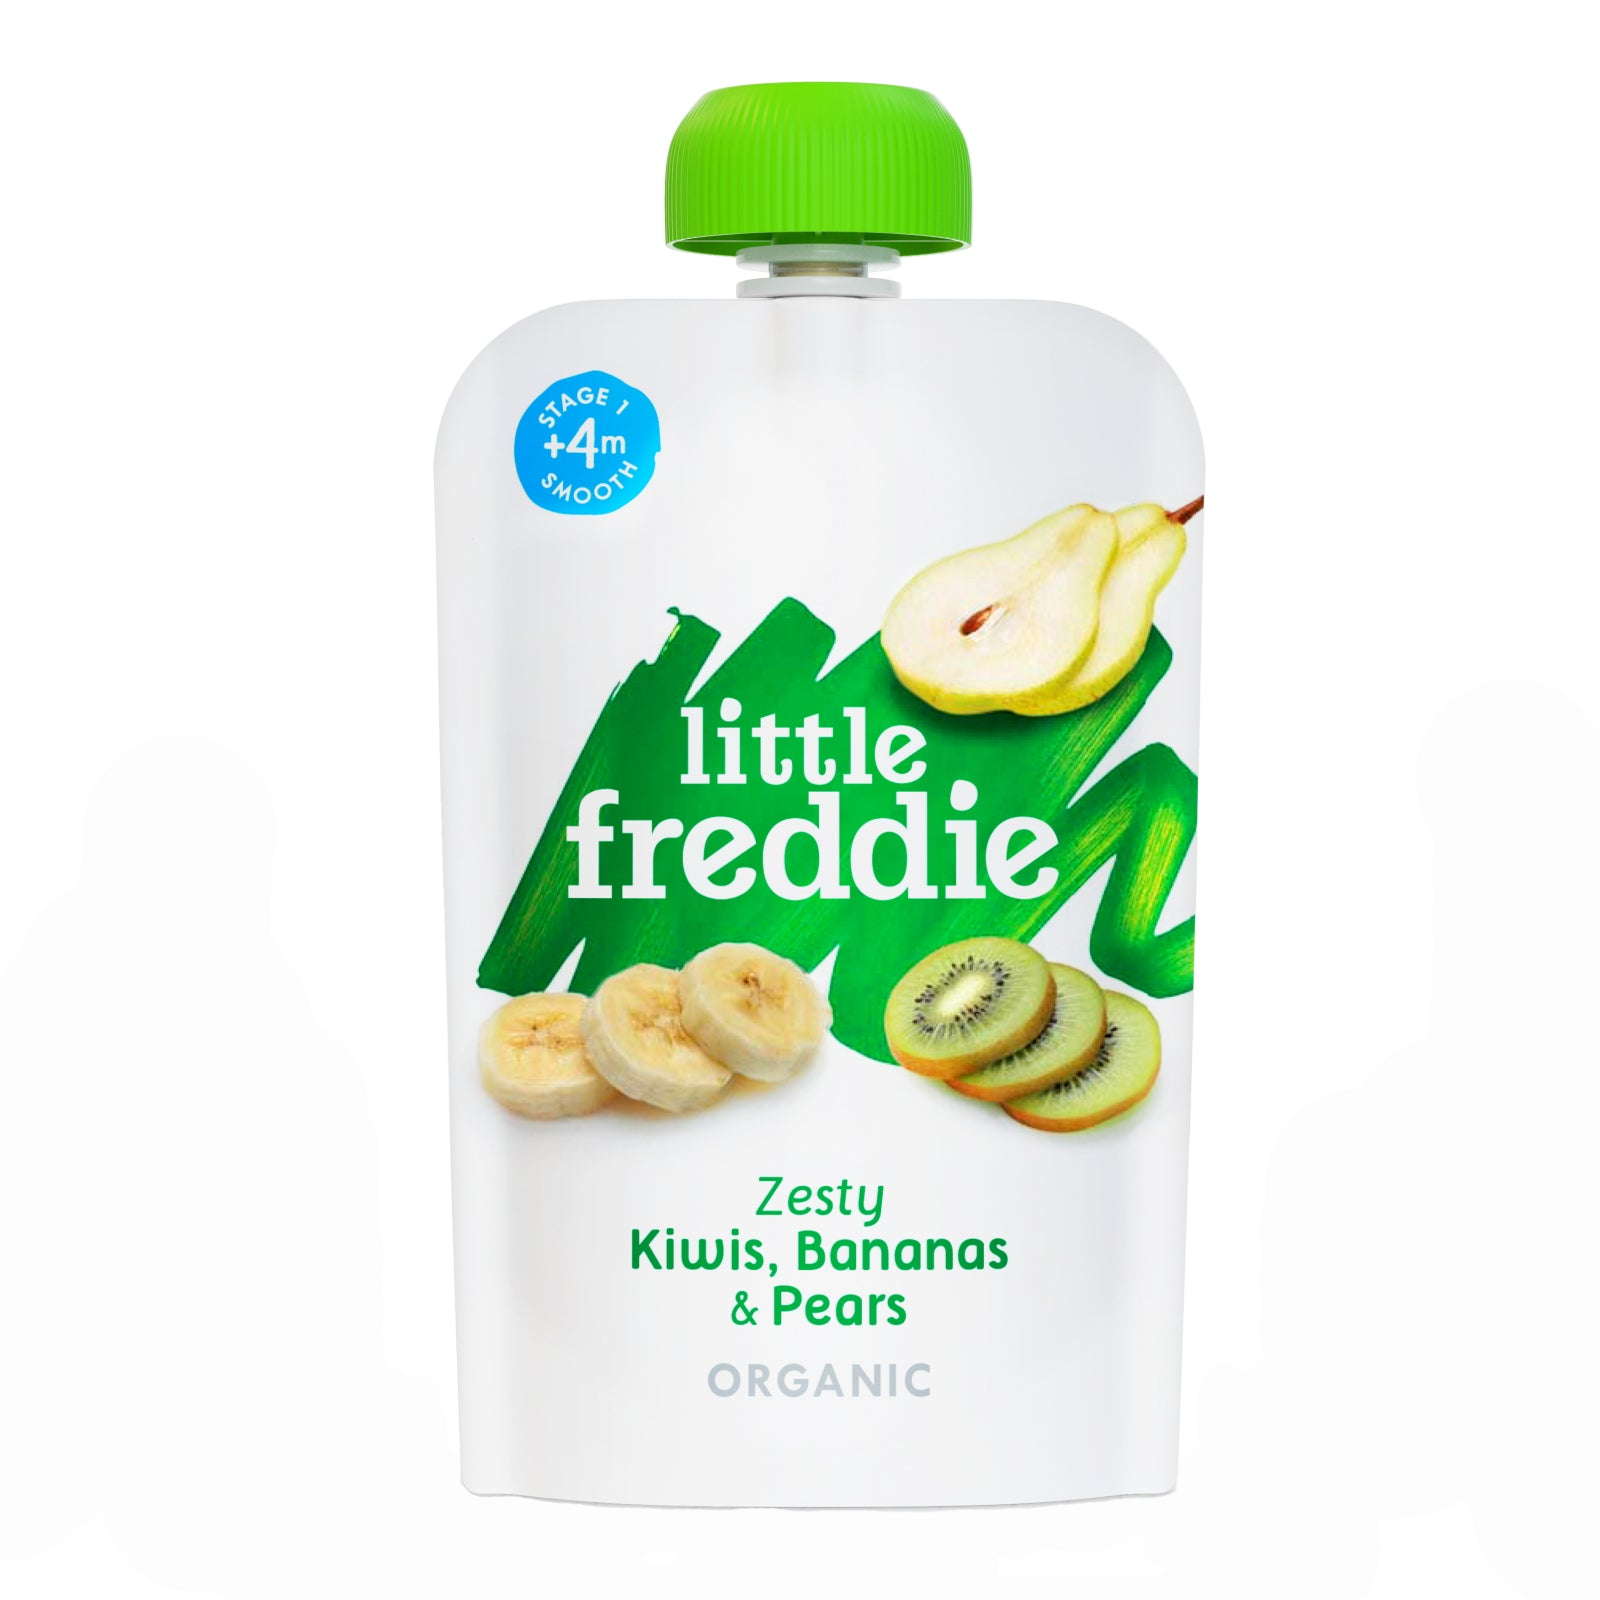 Little Freddie Fruit & Vegetables - Zesty Kiwis , Bananas & Pears - 100g [BBF 7 DEC 2020]